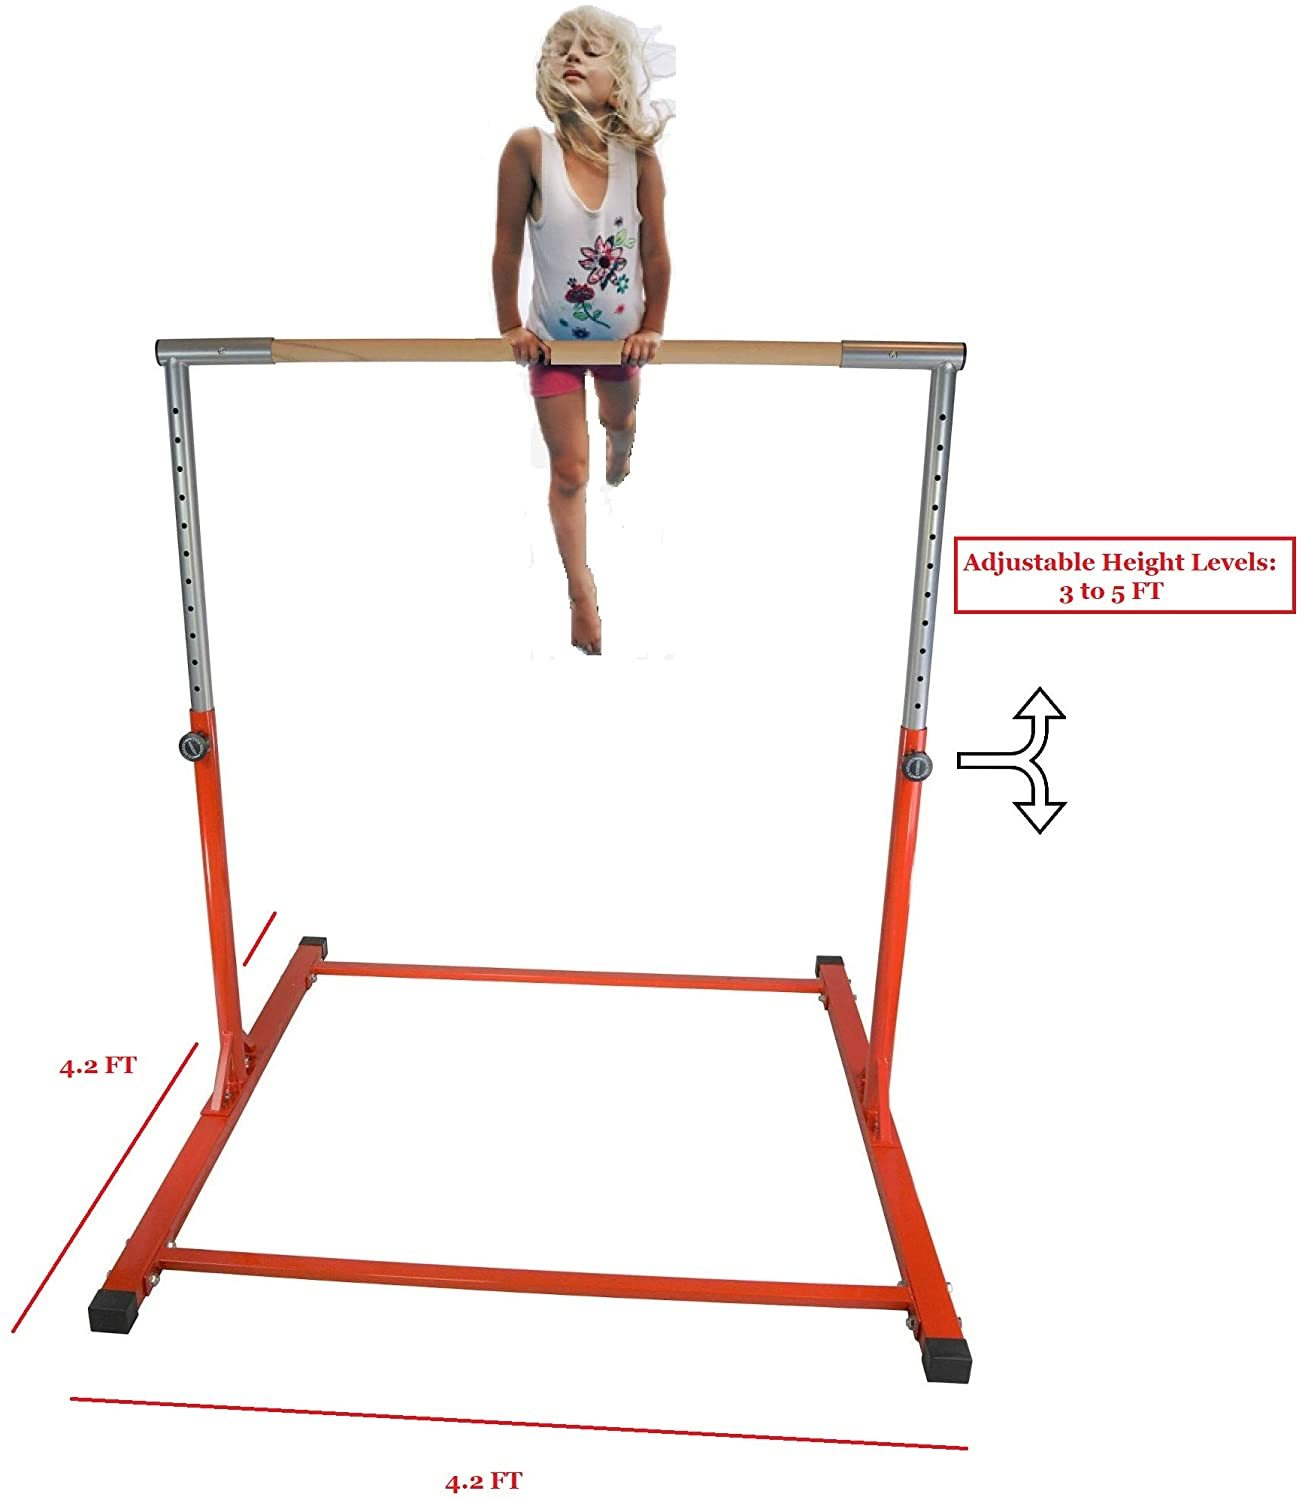 Kids Kip Bar Jungle Gym Professional Horizontal Gymnastics Asymmetric Bar Height Adjustable Expandable 3 to 5 FT Red